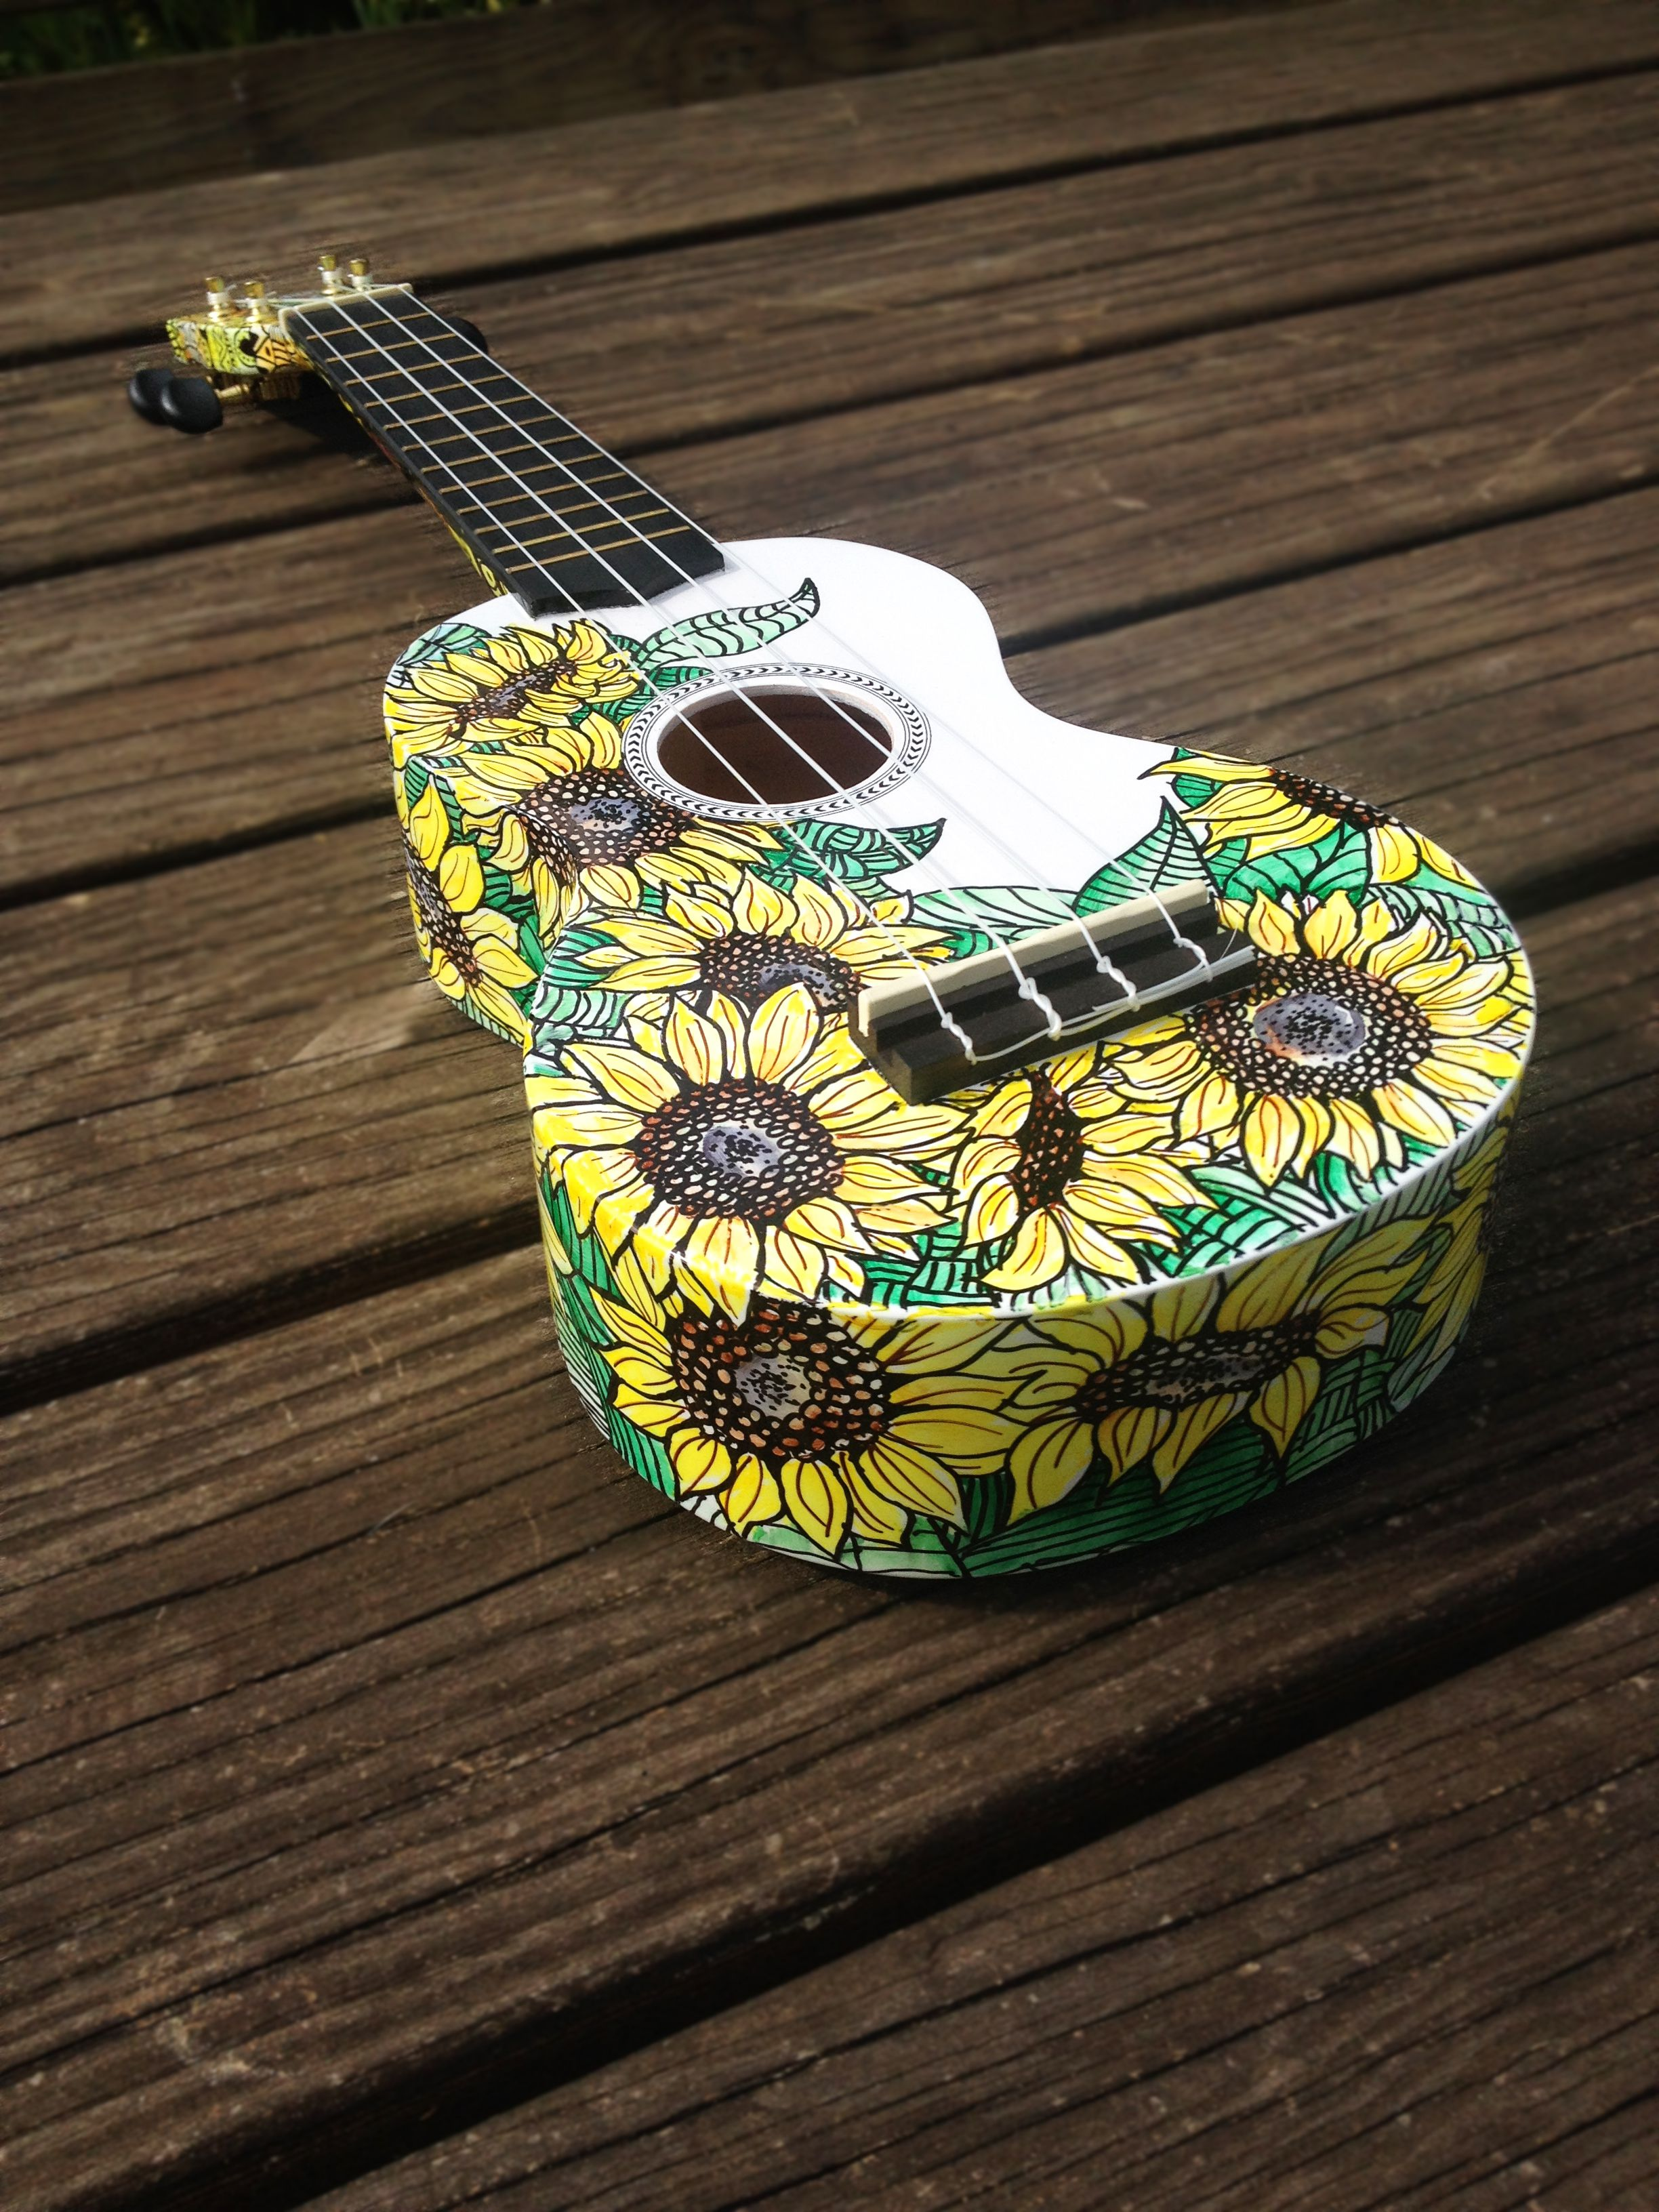 Cedar and Sycamore handpainted ukulele Sunflowers